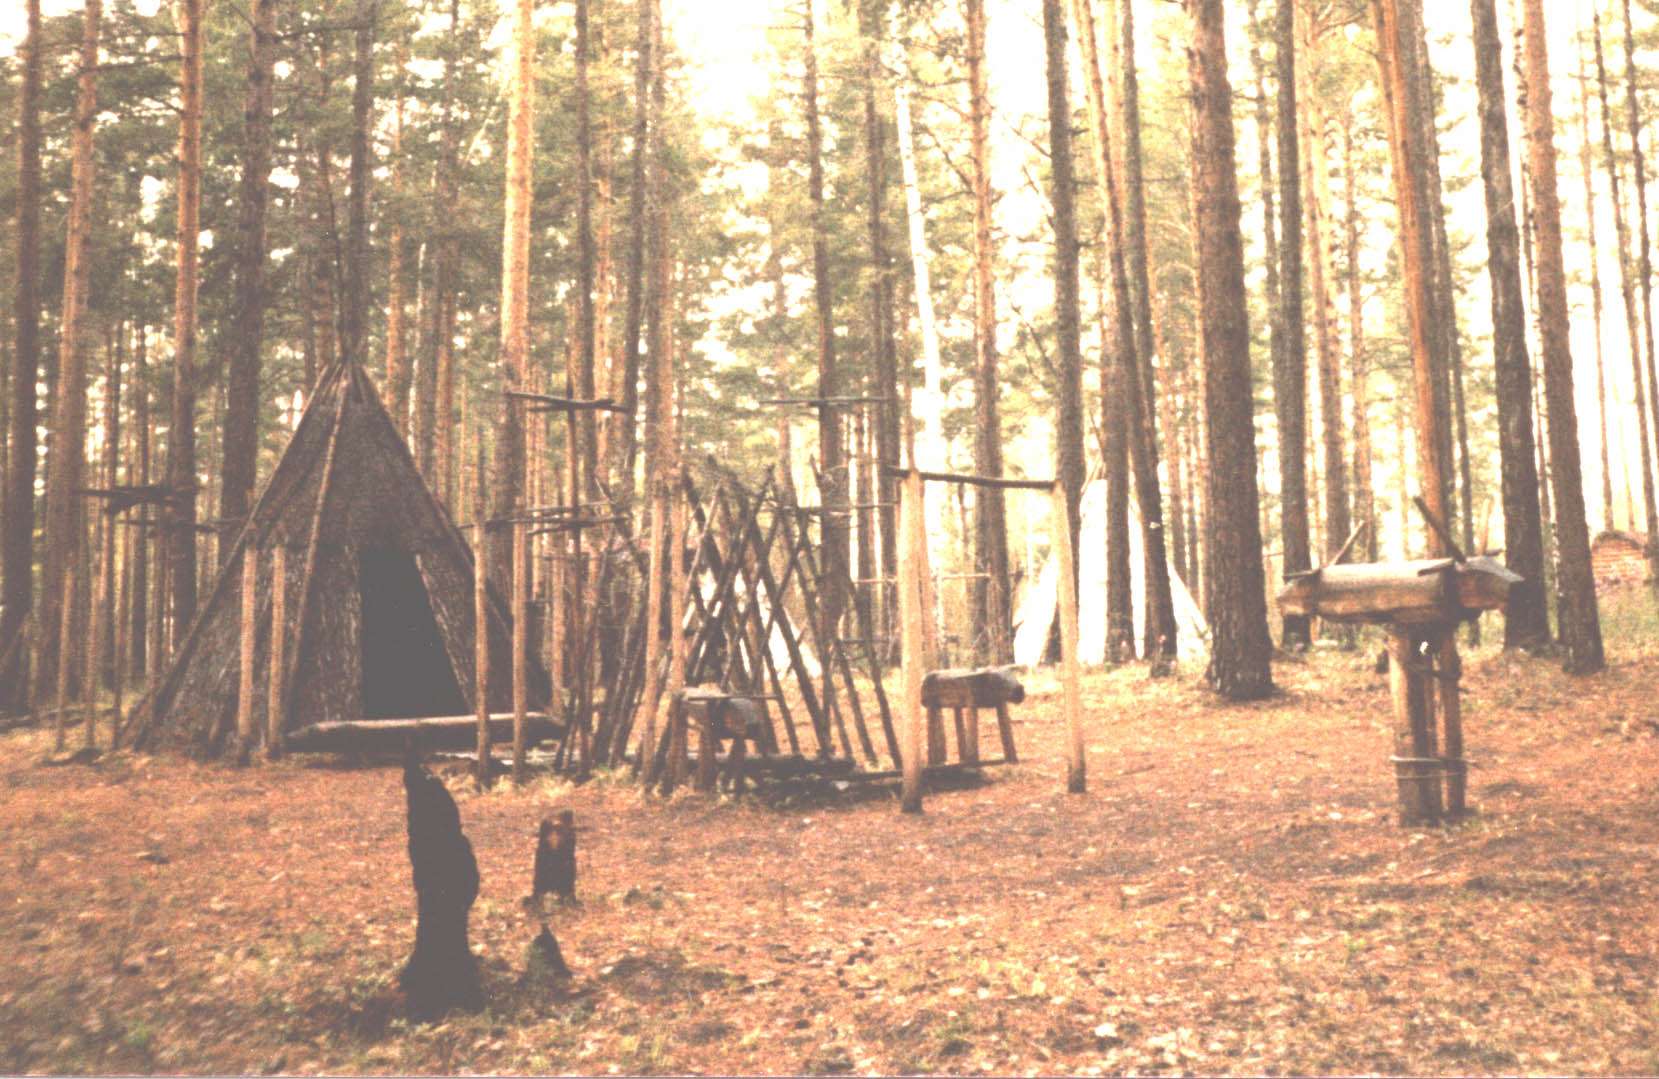 Evenk shaman tent copyright Heather Hobden, photo by Heather Hobden